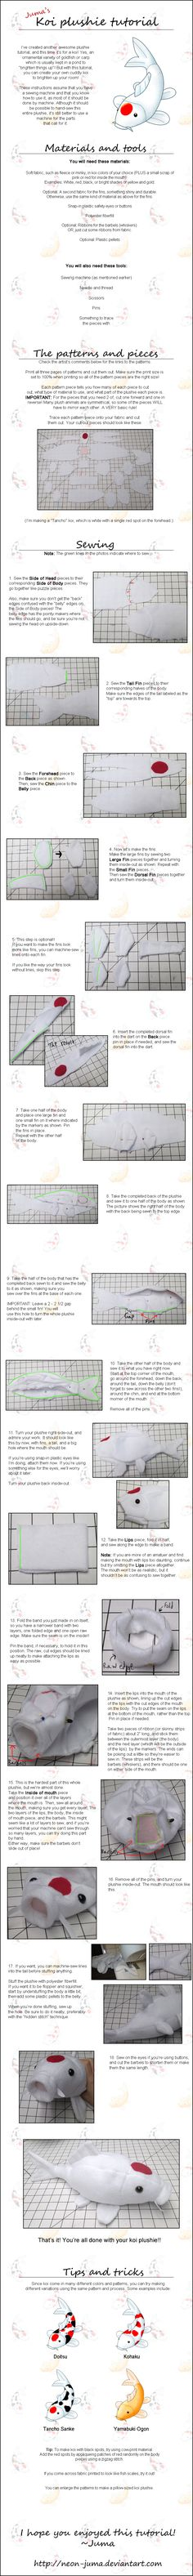 Koi plushie tutorial by Neon-Juma on DeviantArt